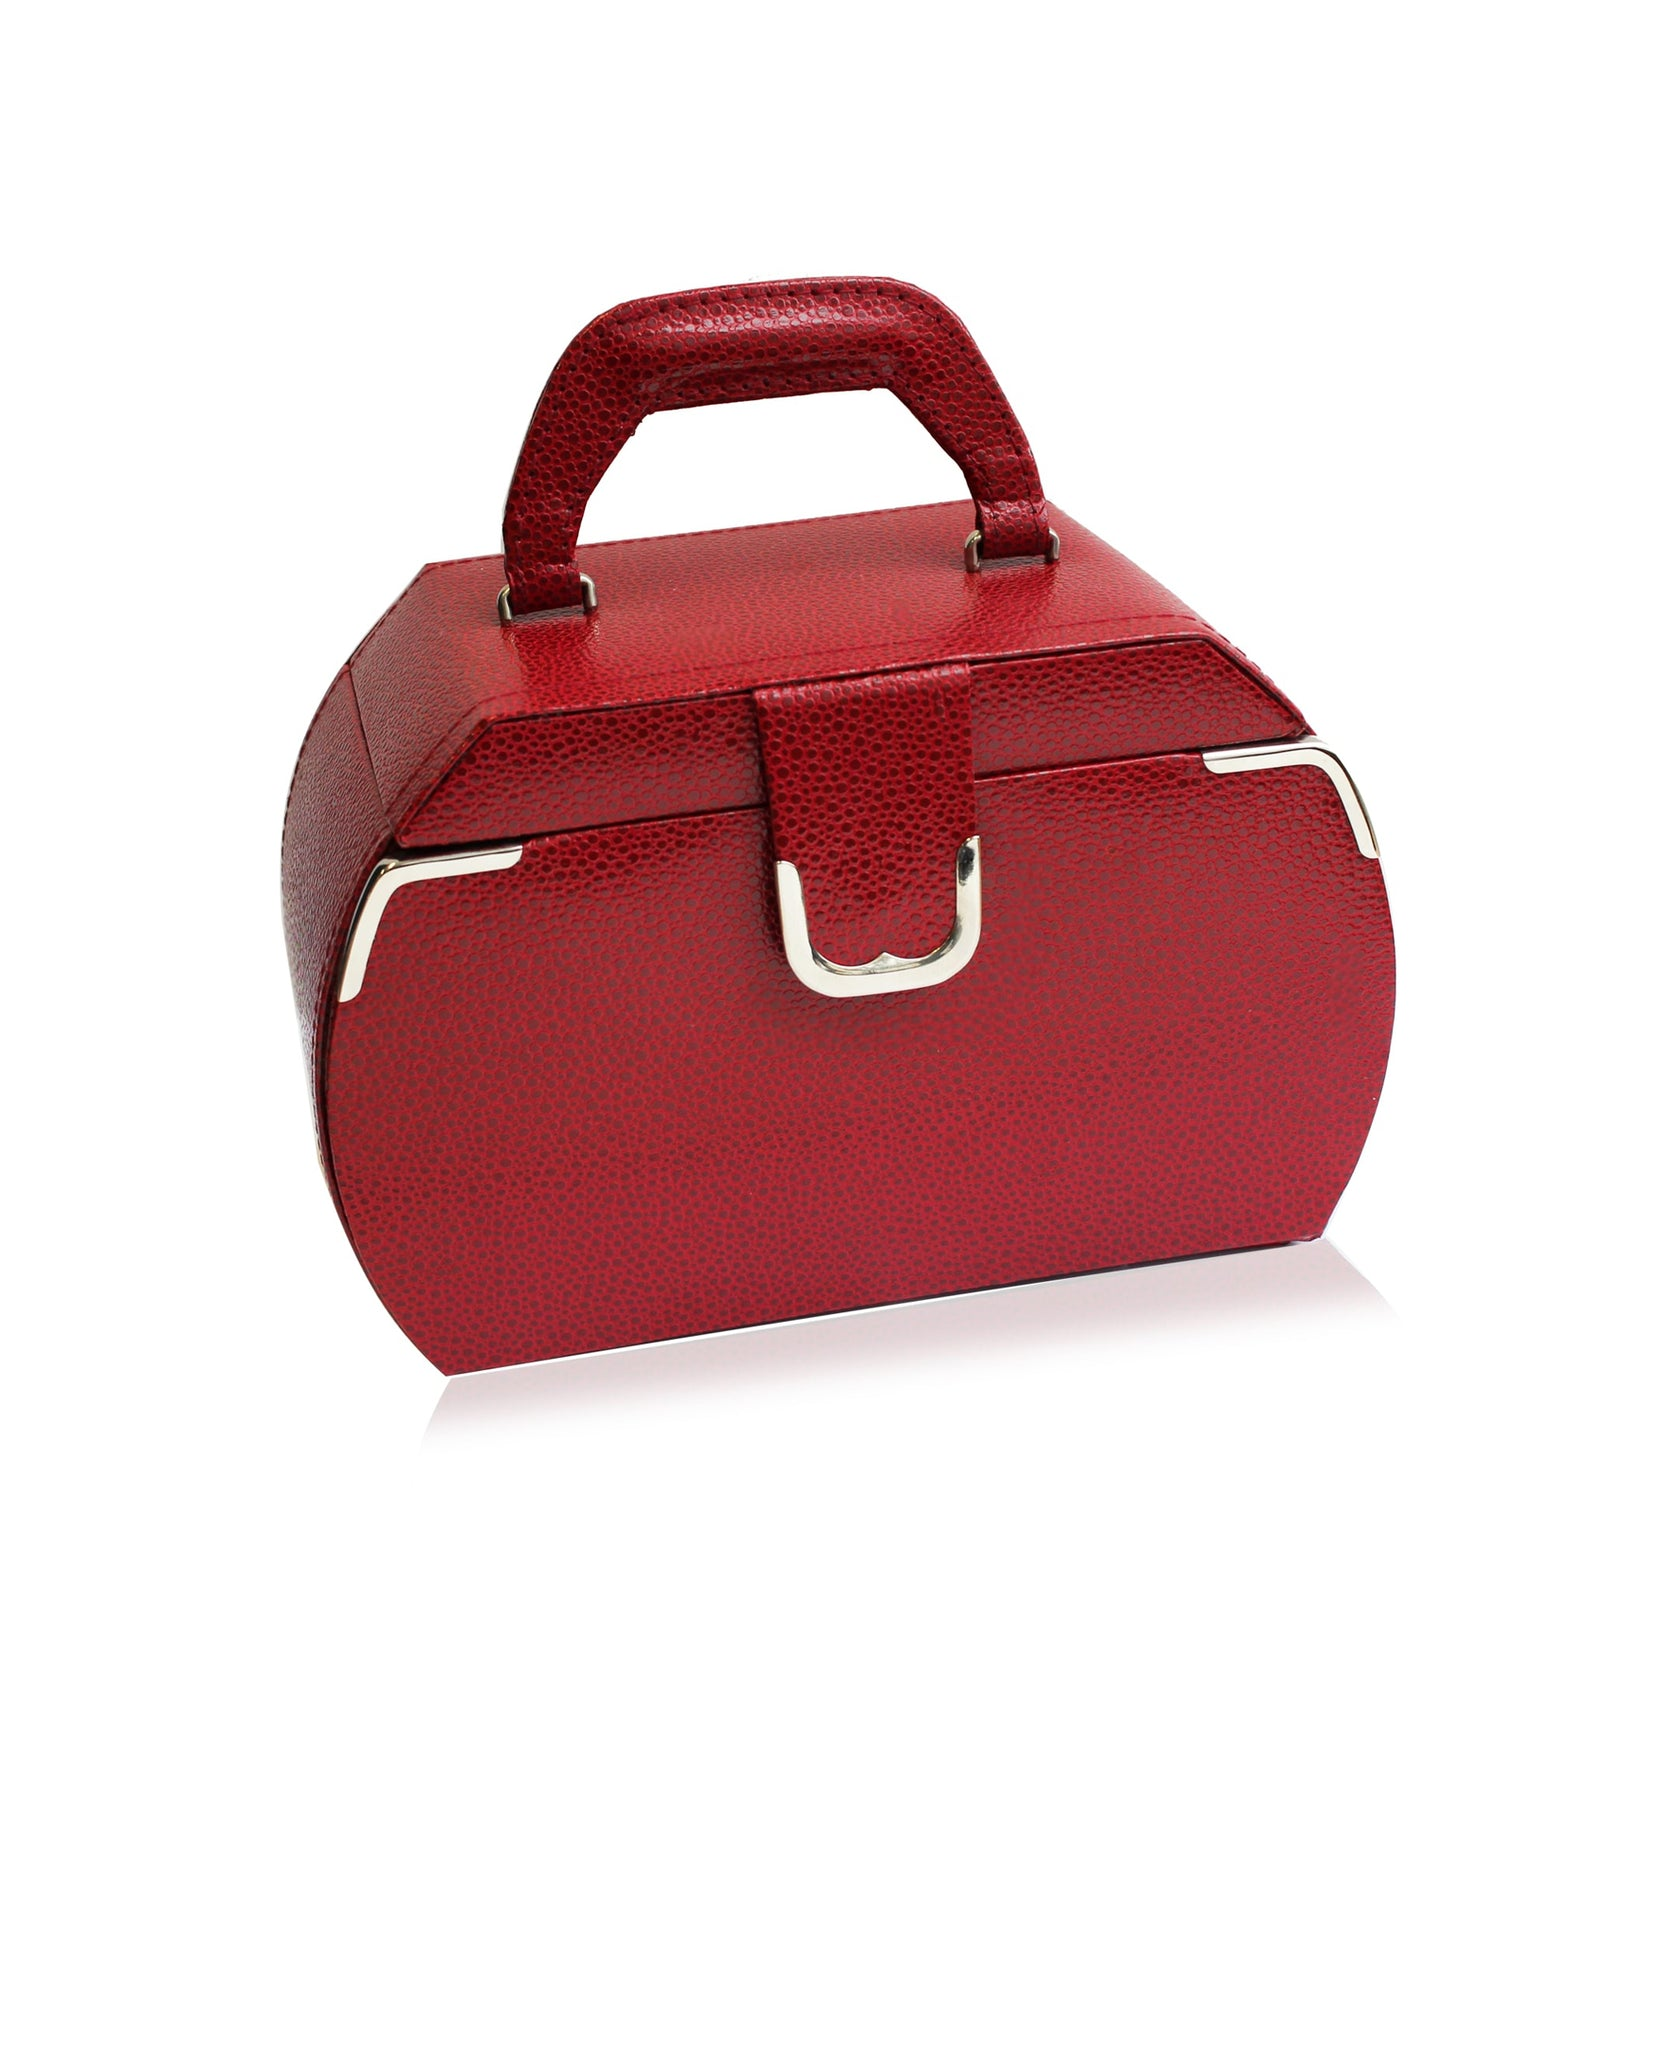 Red Medium Rounded Jewelry Case - Rhona Sutton Jewellery